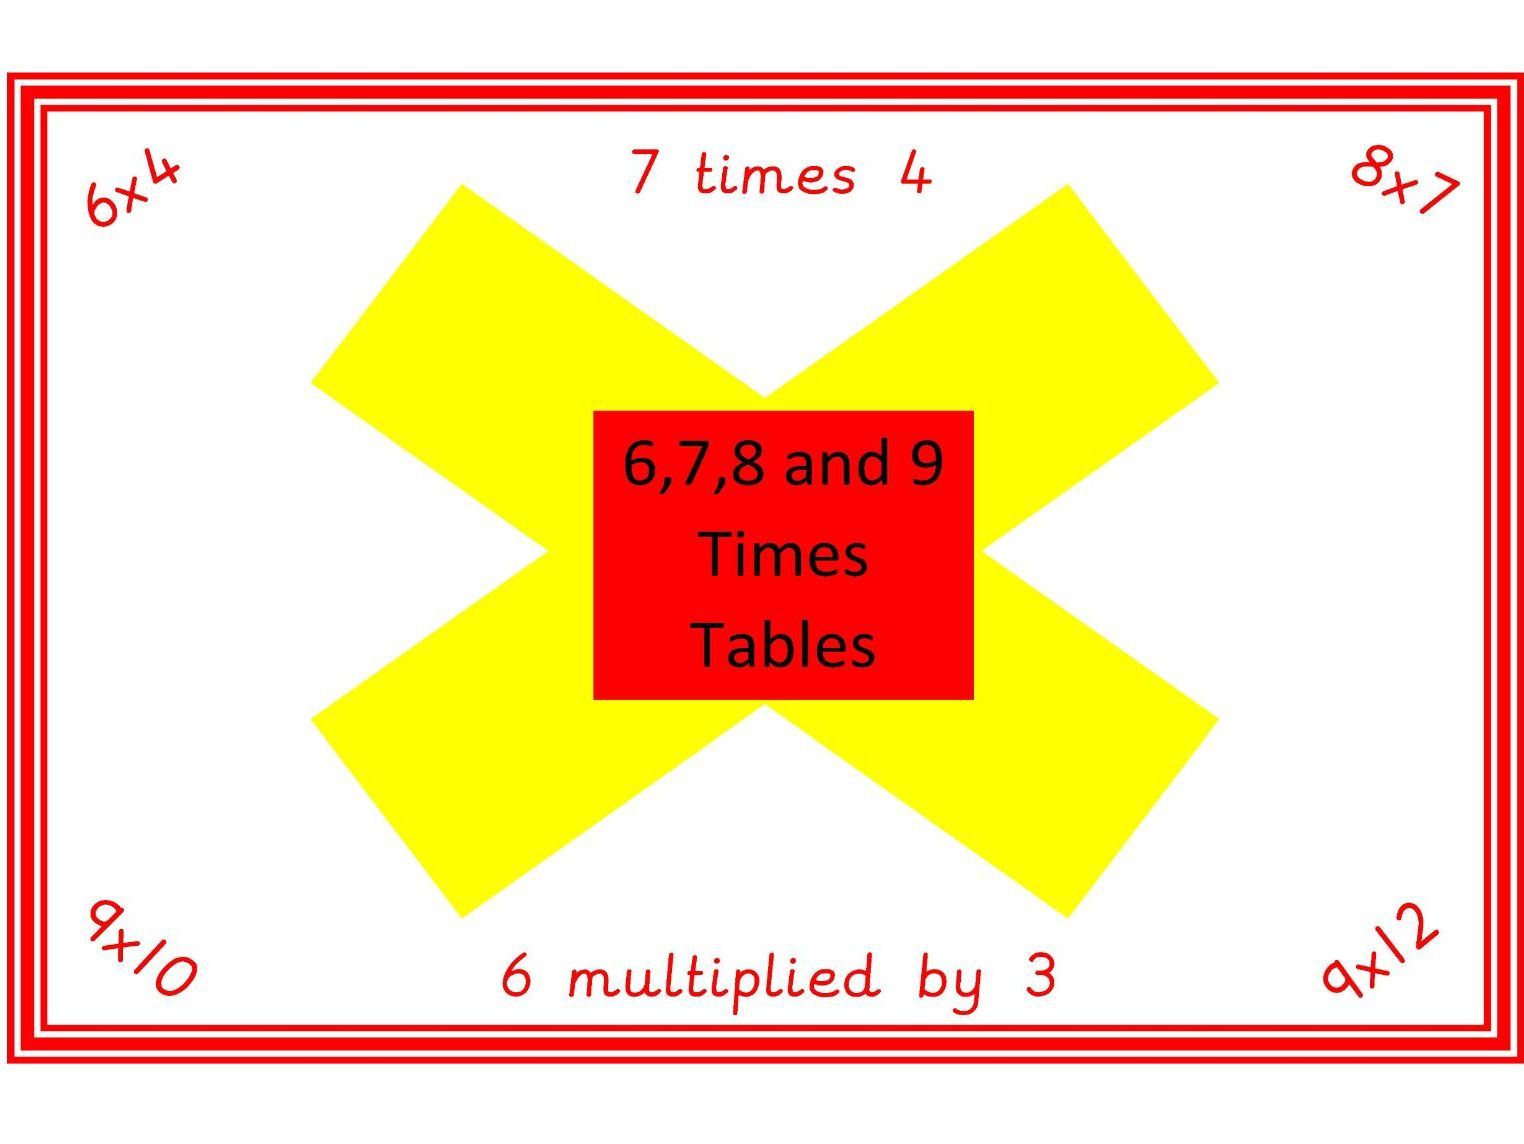 6,7,8 and 9 TImes Tables